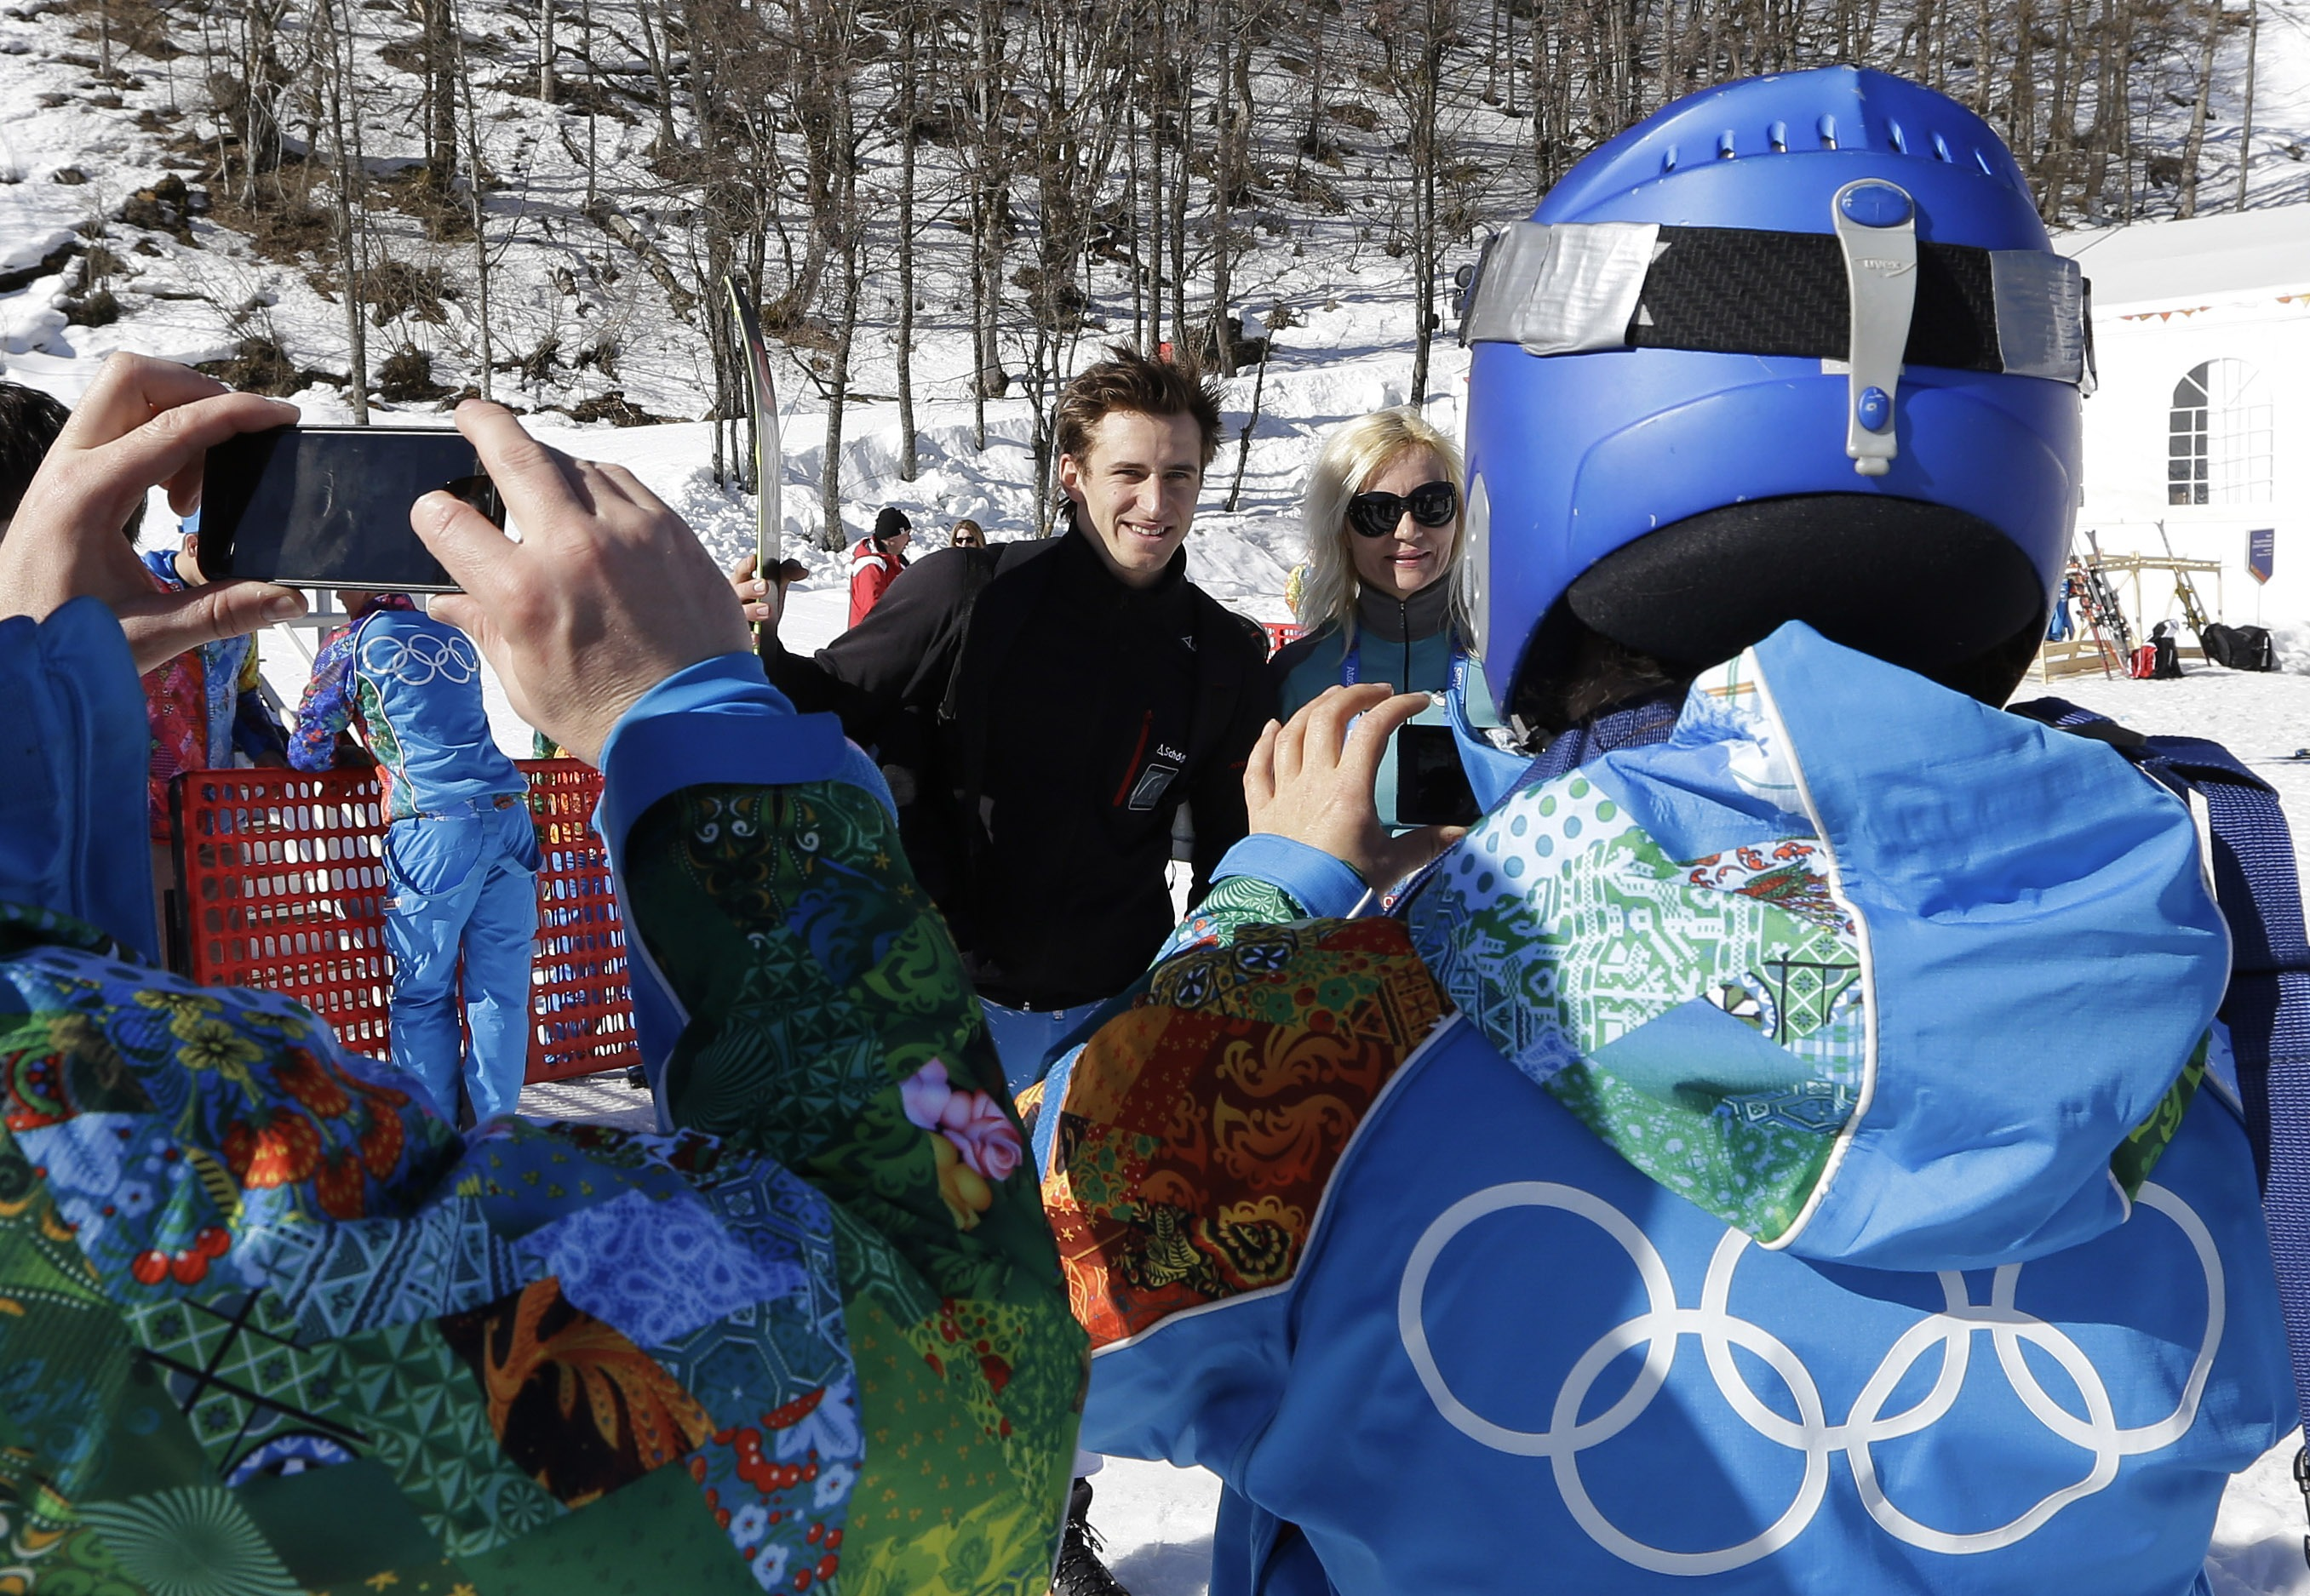 Austria's Matthias Mayer has his photo taken by volunteers near the finish area after completing men's downhill combined training at the Sochi 2014 Winter Olympics, Thursday, Feb. 13, 2014, in Krasnaya Polyana, Russia.  (AP Photo/Luca Bruno)